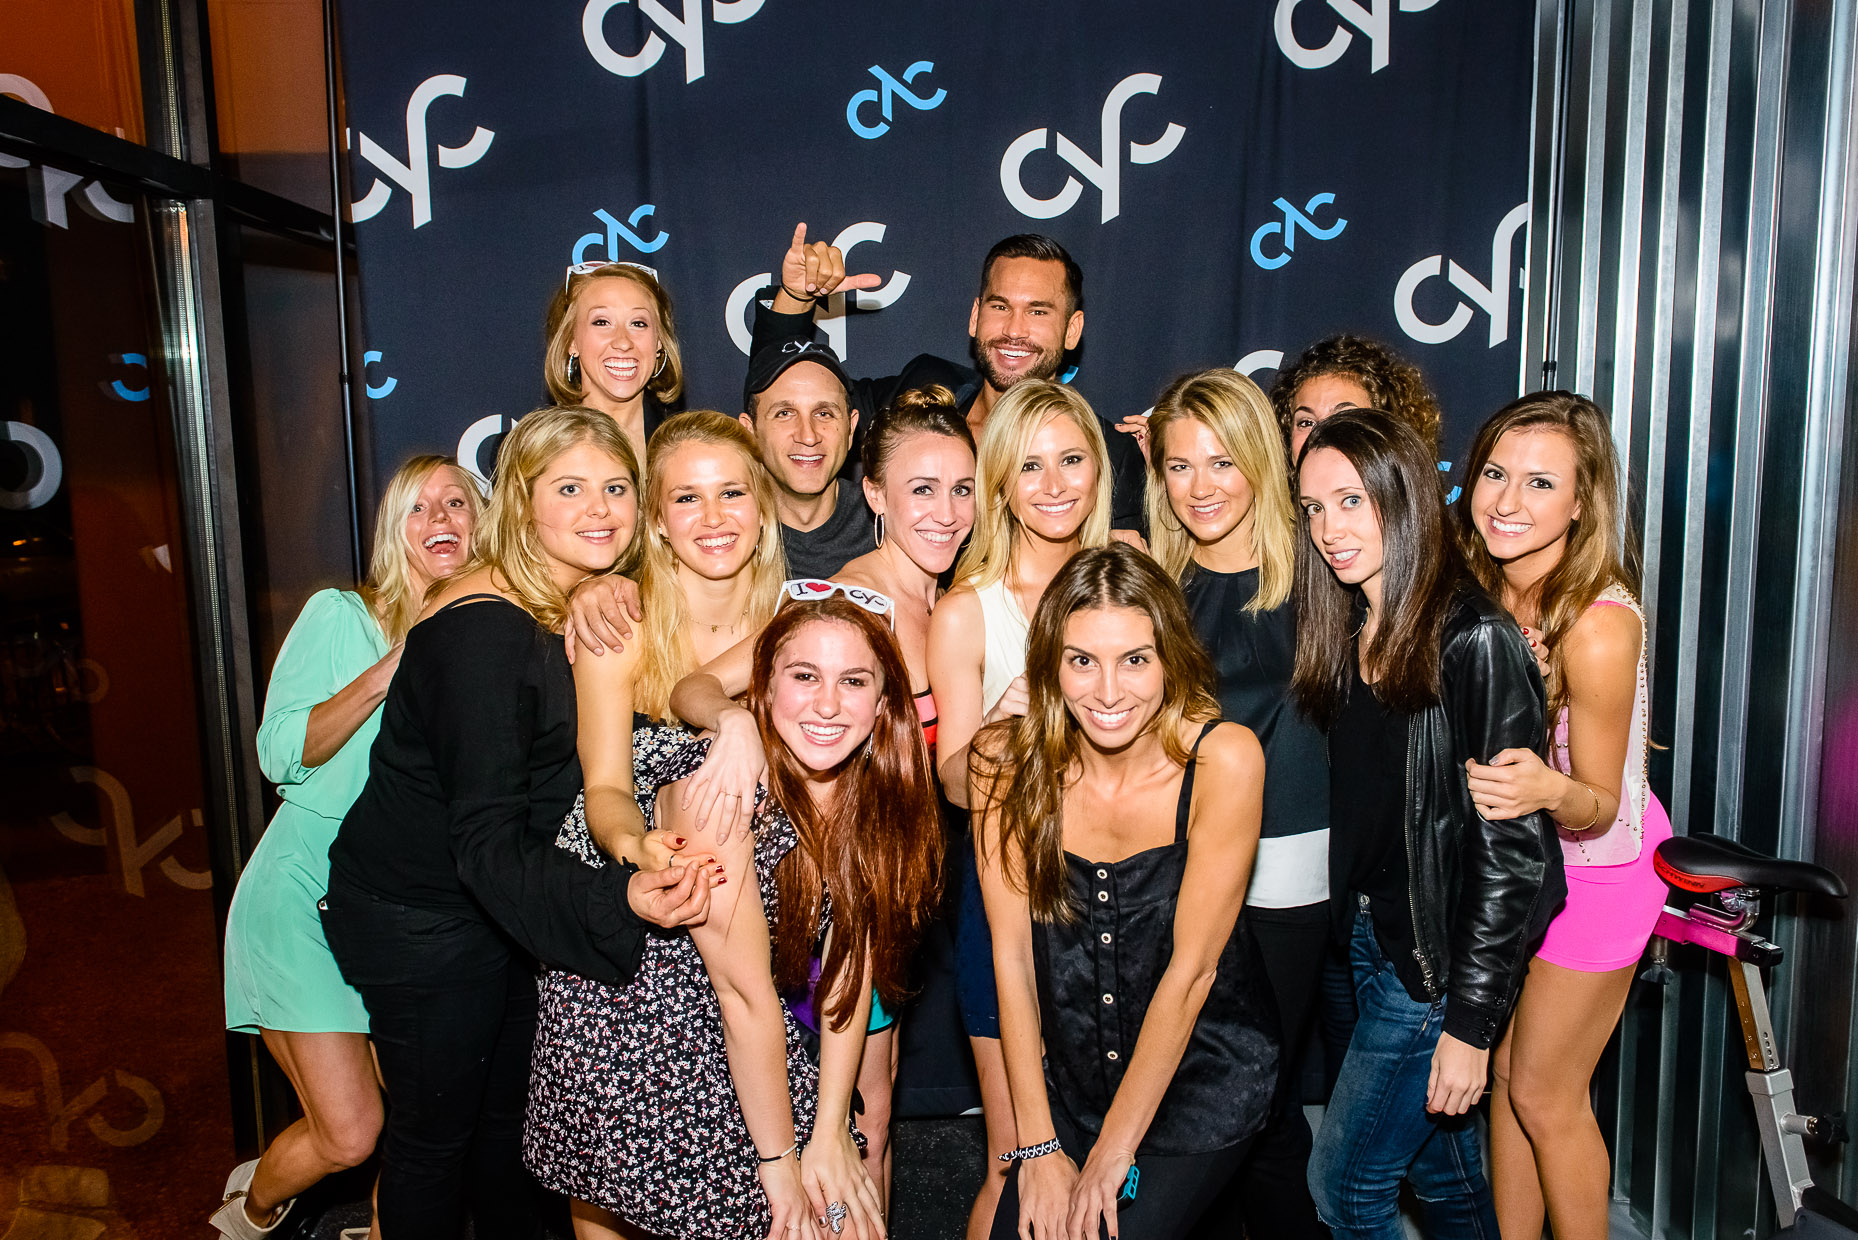 CYC-Fitness-Austin-Event-Photobooth-Photographer.jpg